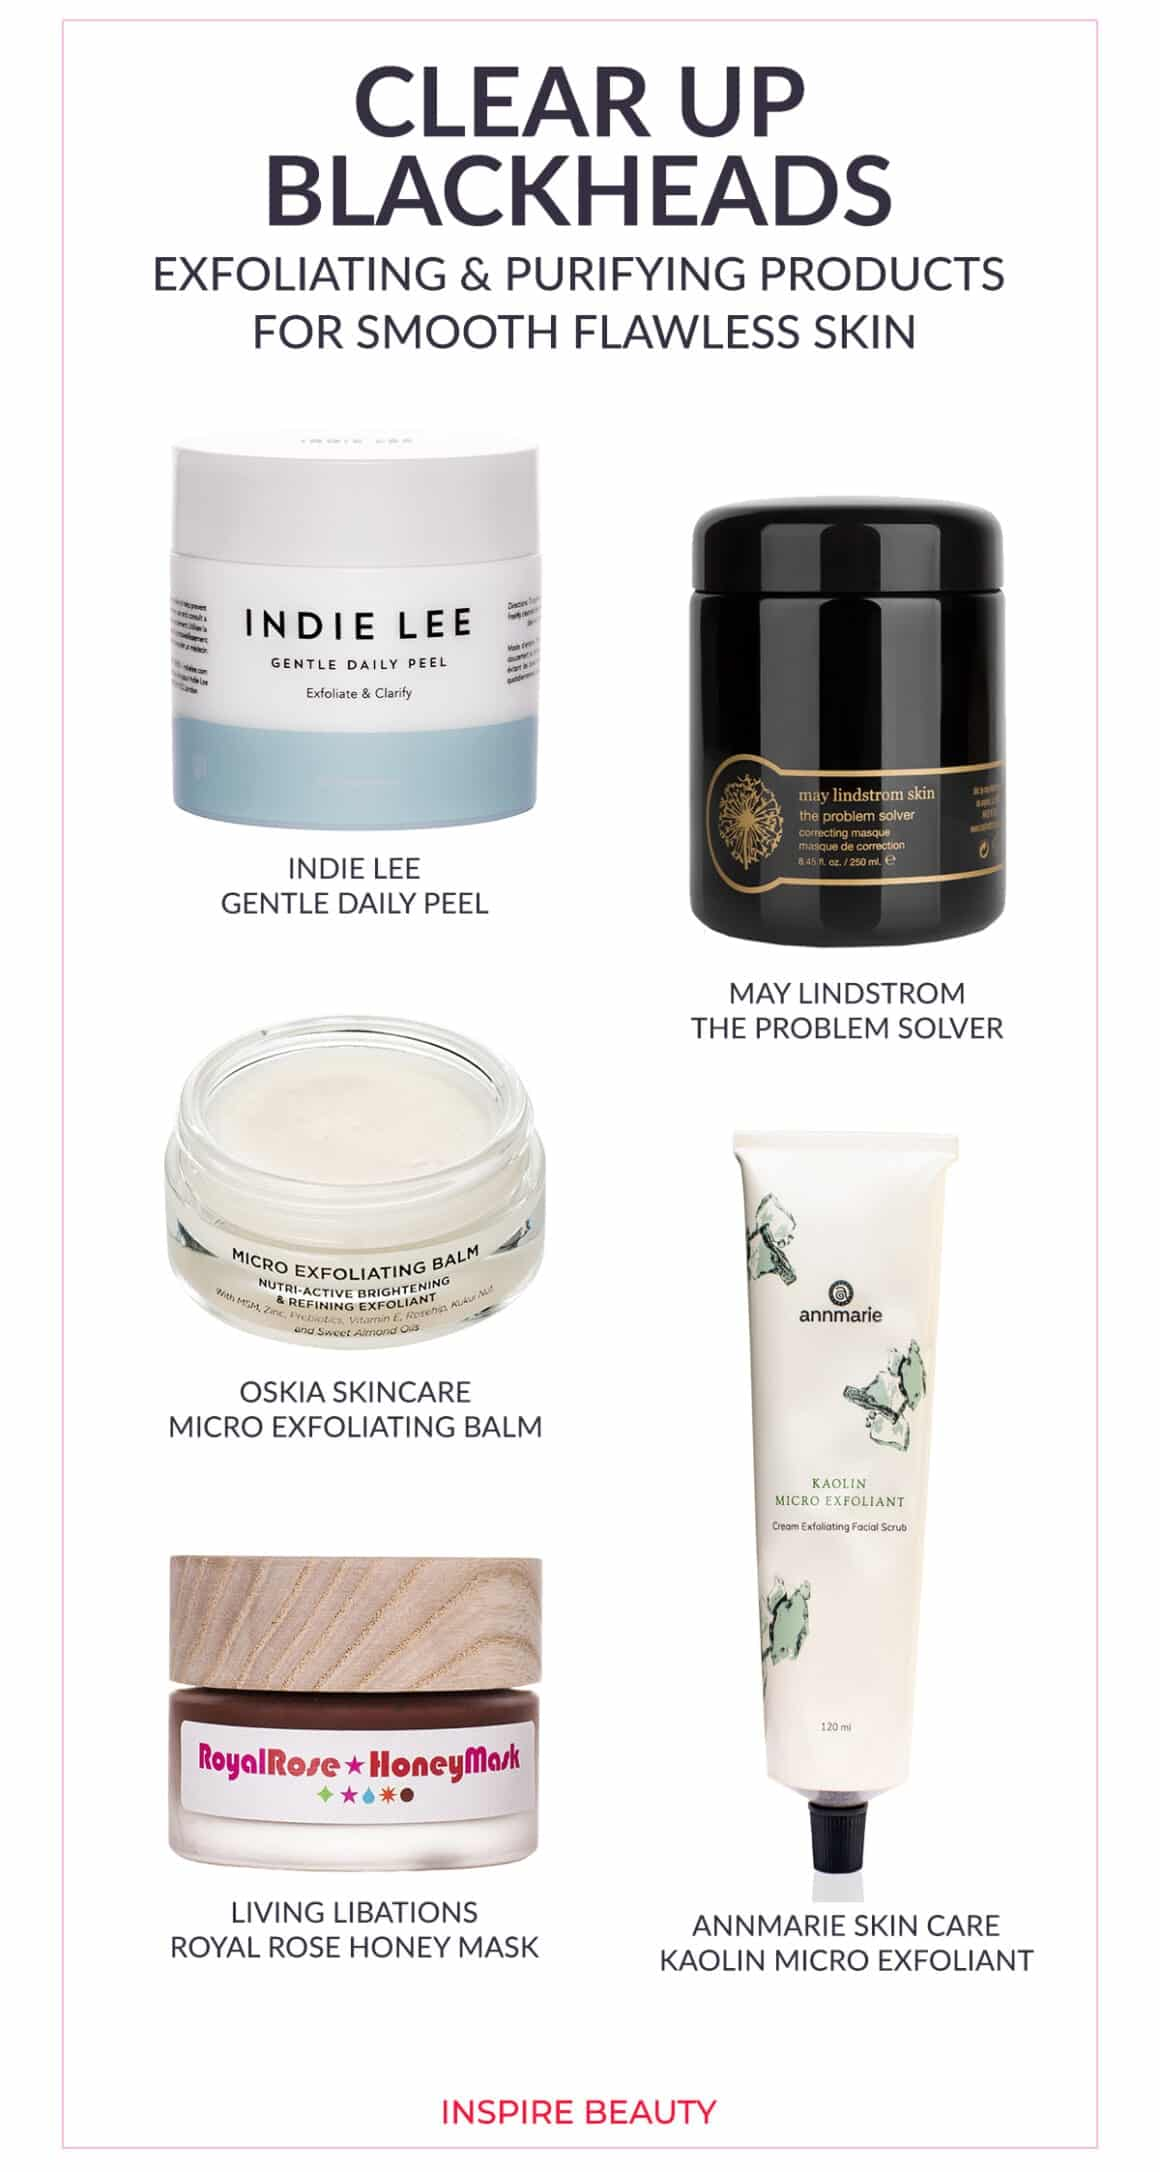 Exfoliating skin care products for blackheads featuring Indie Lee Gentle Daily Peel, Living Libations Royal Rose Honey Mask, Oskia Micro Exfoliating Balm, May Lindstrom Problem Solver, Annmarie Skin Care Kaolin Micro Exfoliant